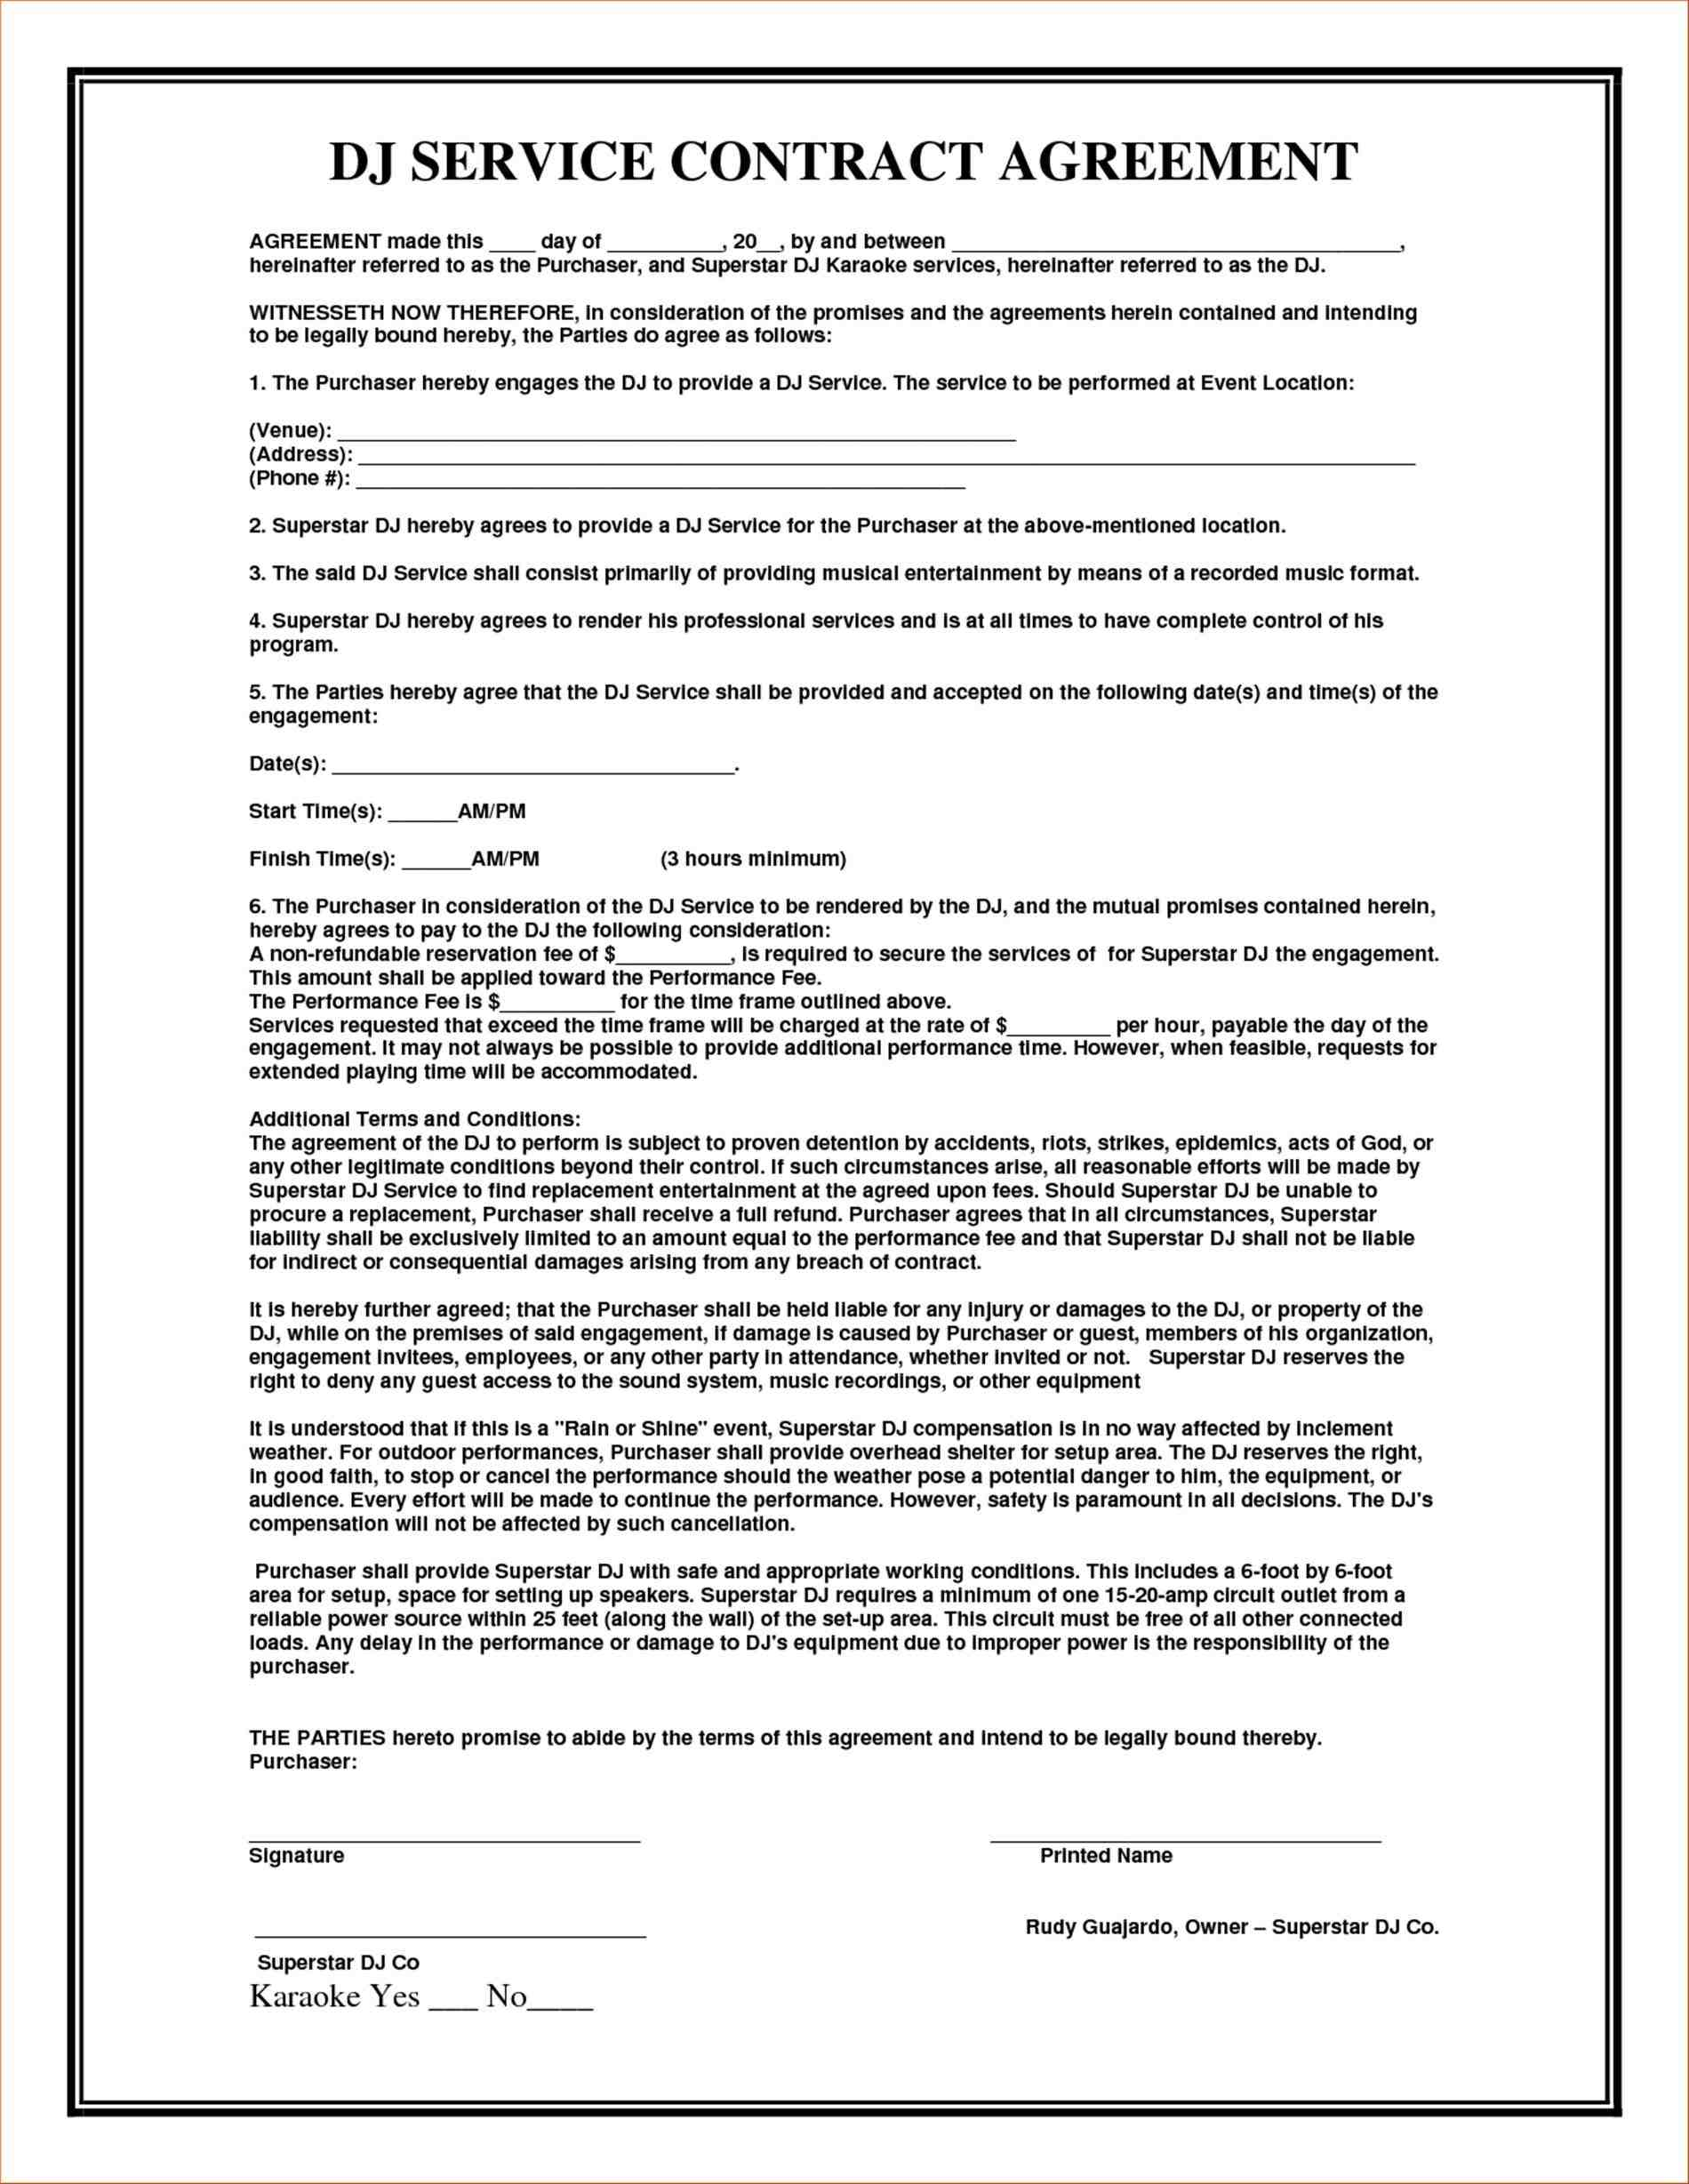 Top 5 Formats For Consulting Agreement Templates service contract template with agreement rhjosherovcom it support vendor part time it Top